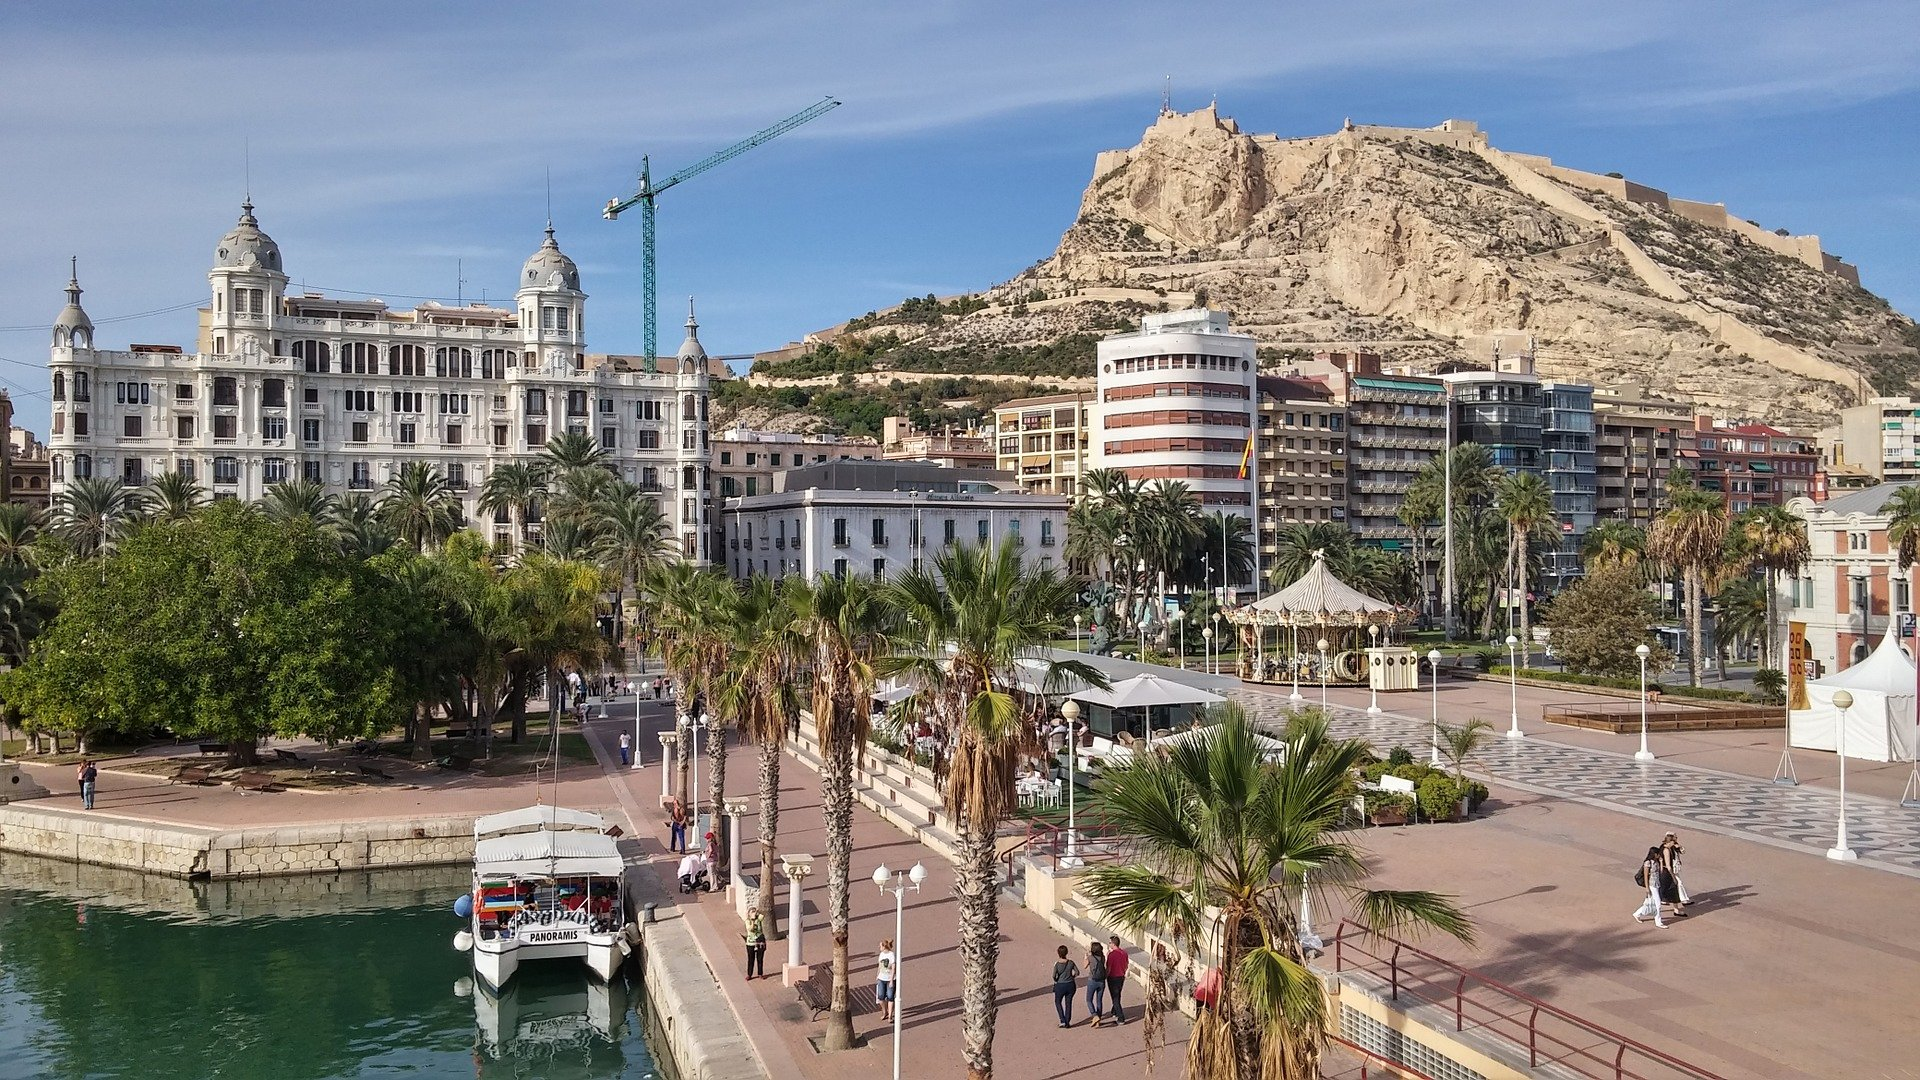 Alicante in Spain - My personal guide